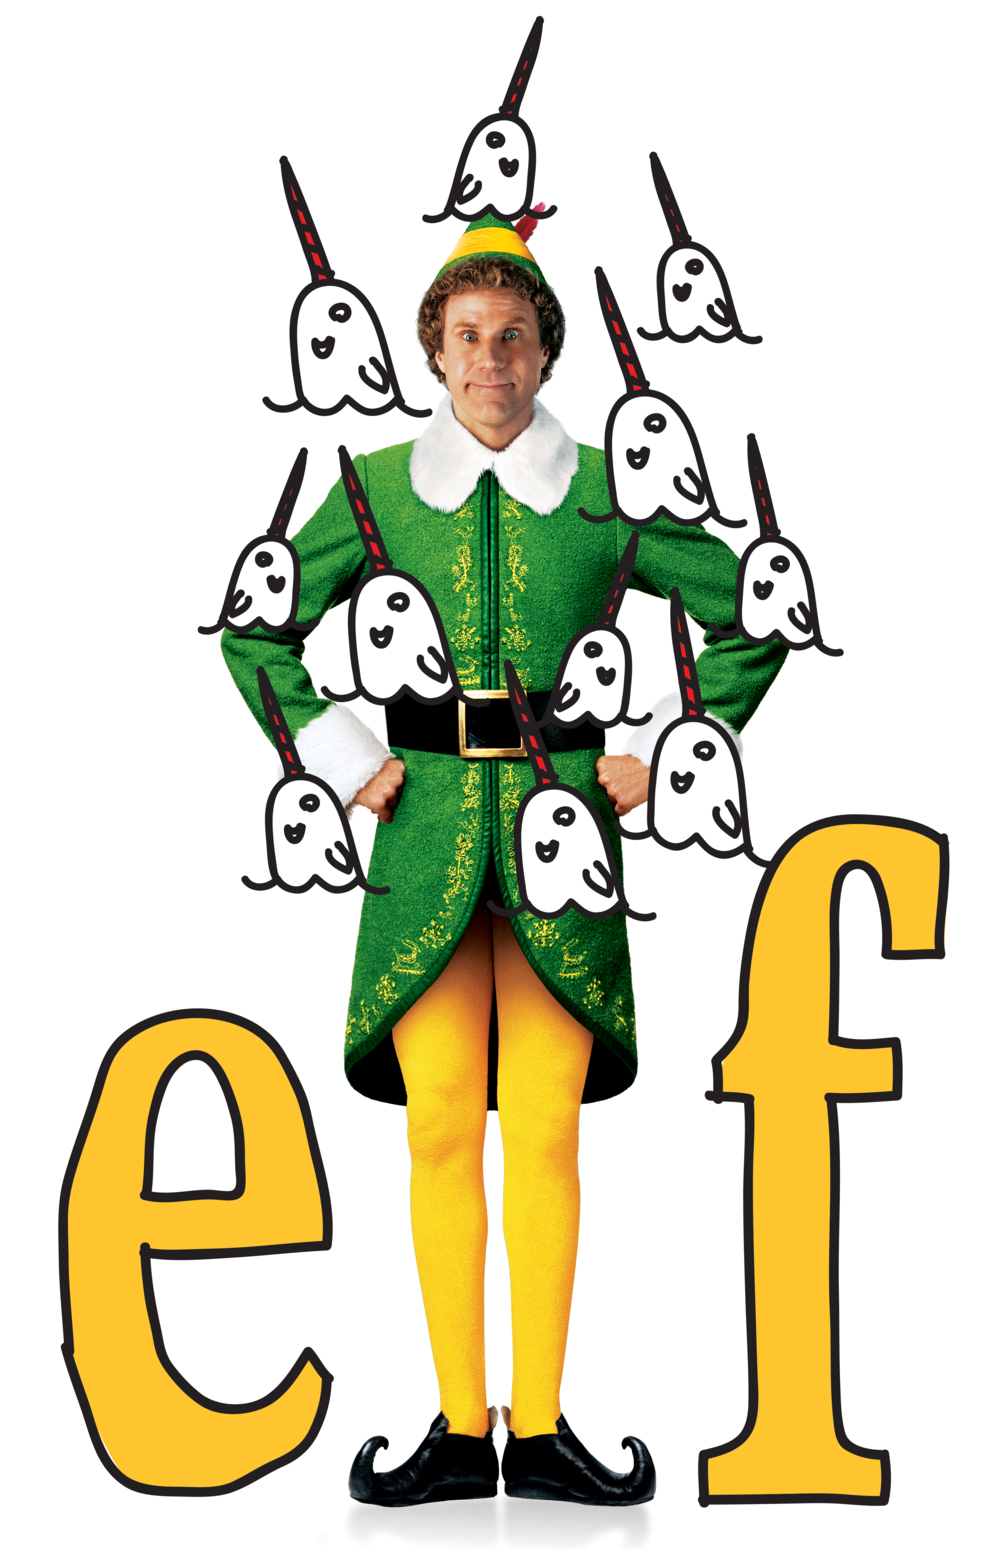 ELF_Graphic_03.png